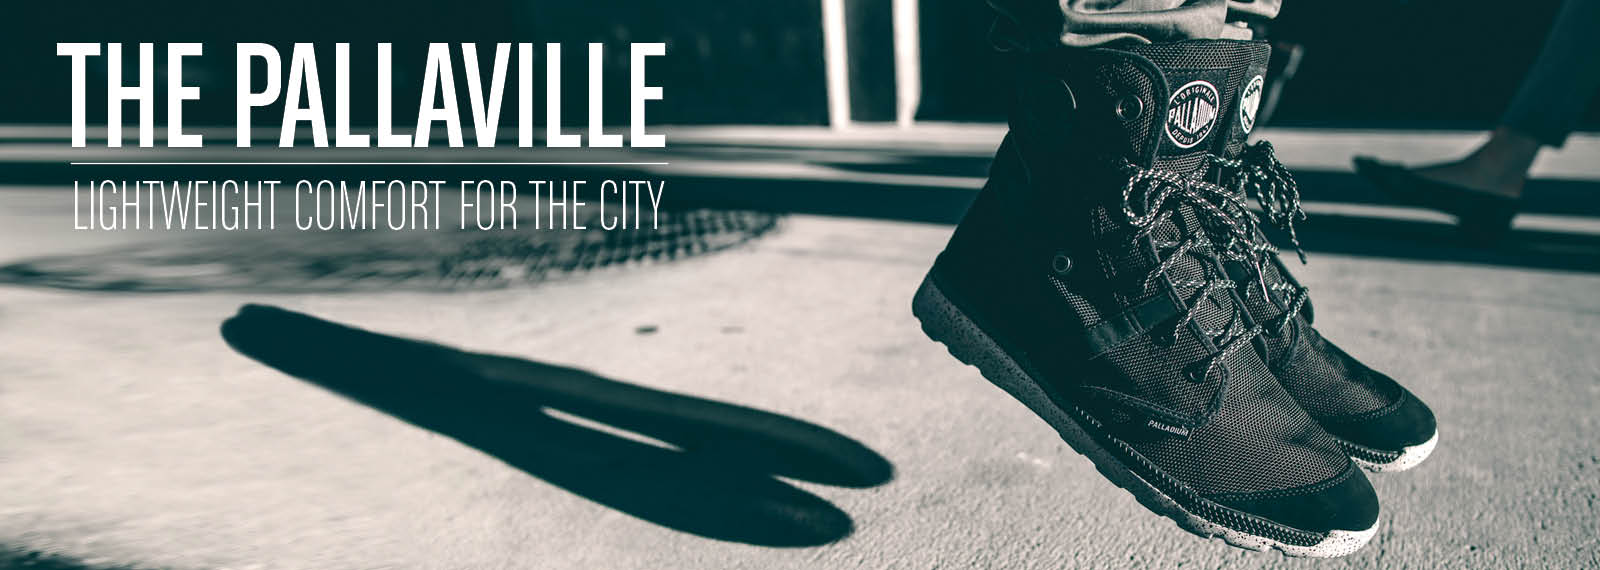 THE PALLAVILLE: LIGHTWEIGHT COMFORT FOR THE CITY